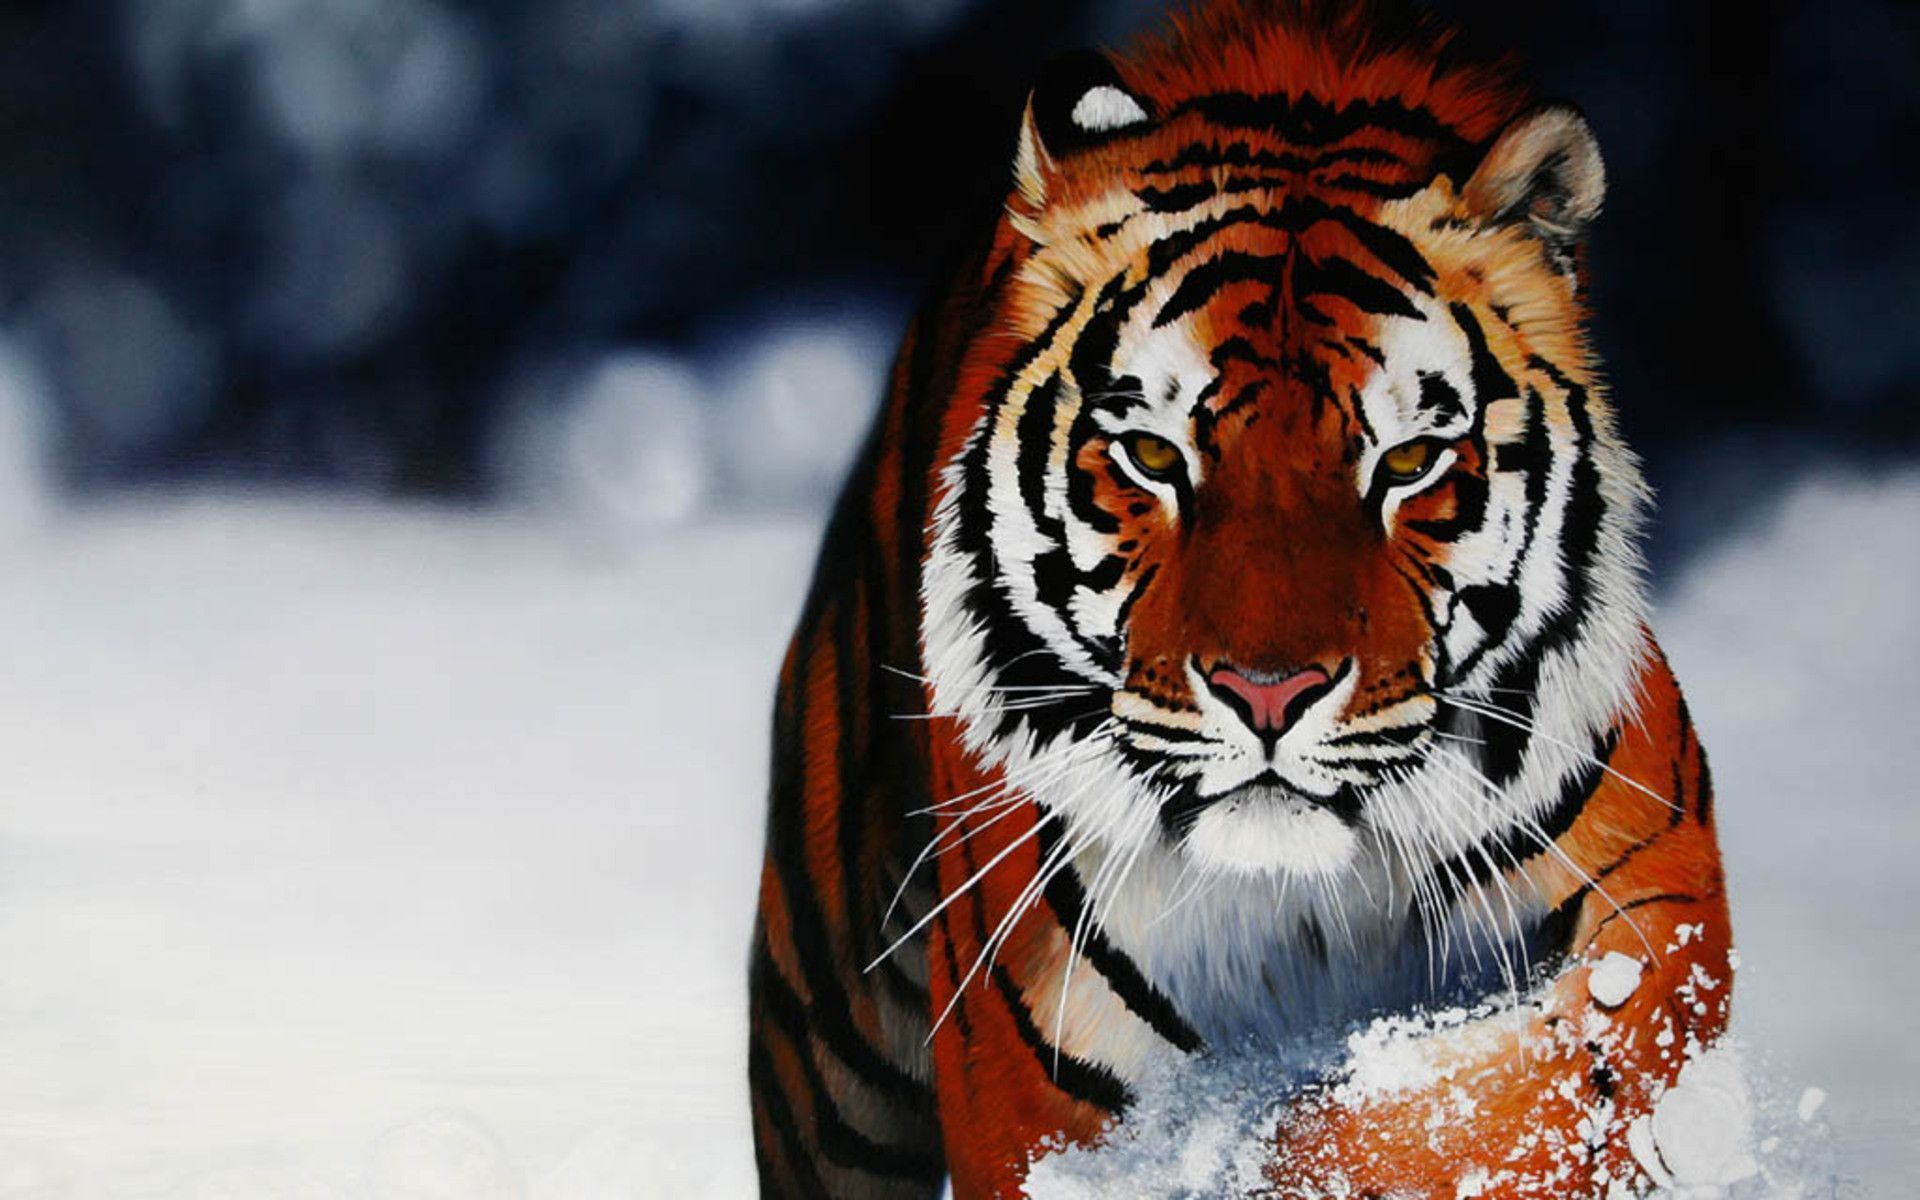 Tiger hd p wallpapers hd wallpapers wallpapers k pinterest hd